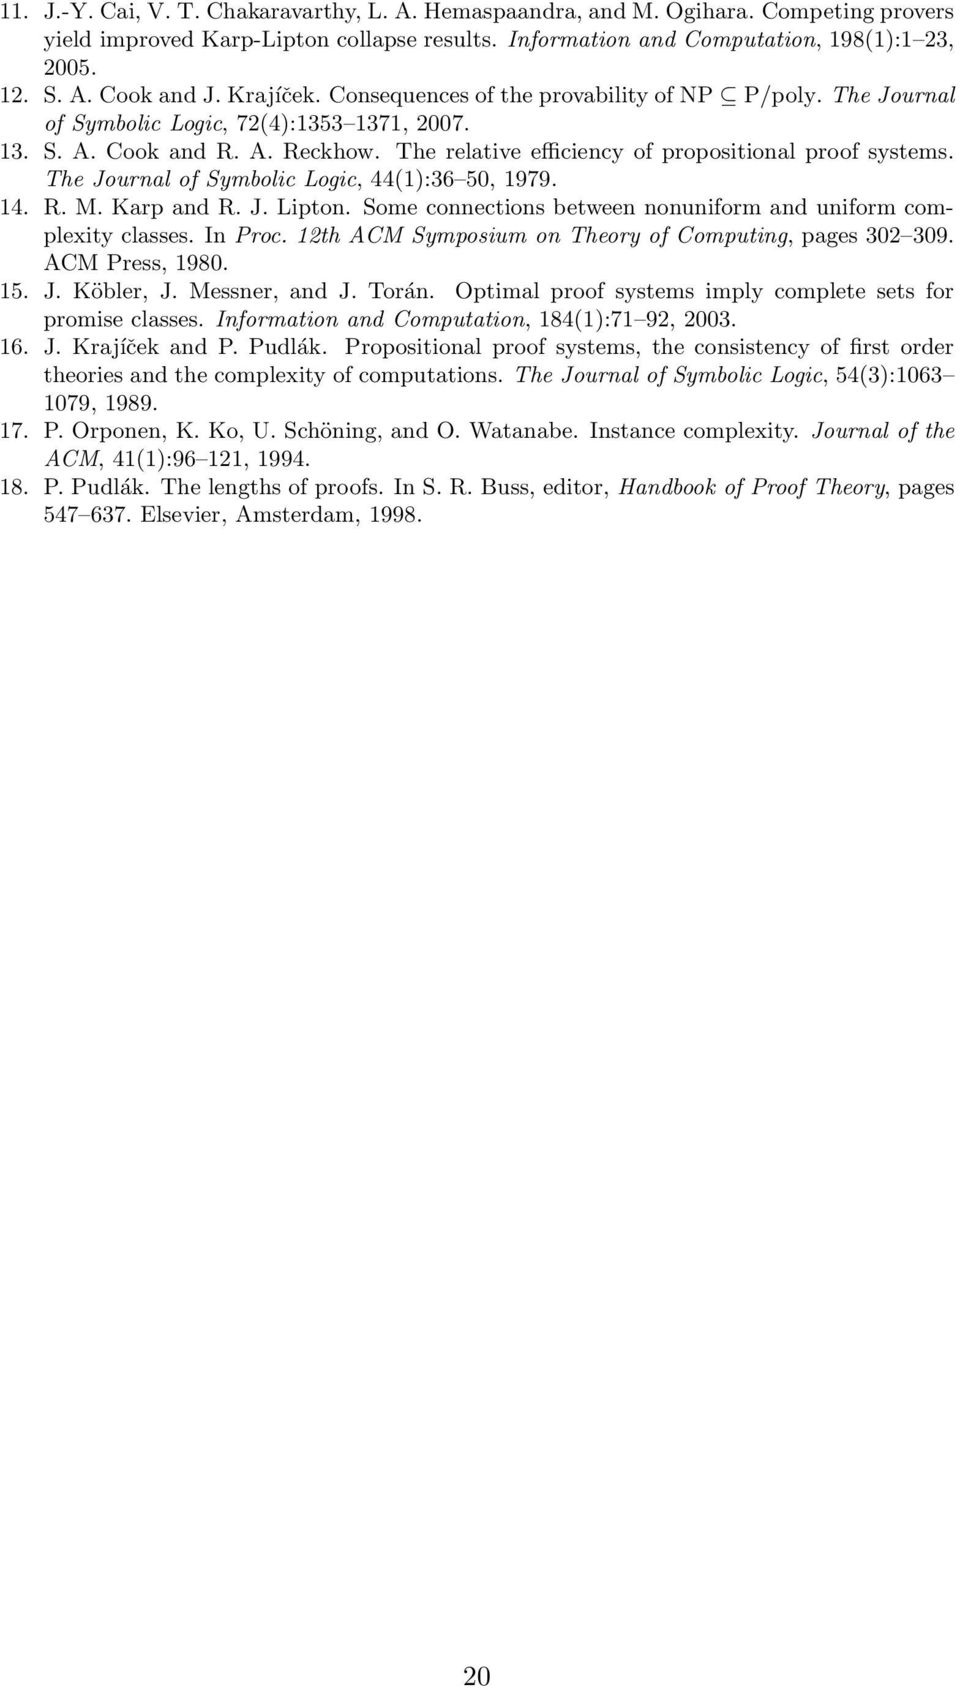 The Journal of Symbolic Logic, 44(1):36 50, 1979. 14. R. M. Karp and R. J. Lipton. Some connections between nonuniform and uniform complexity classes. In Proc.